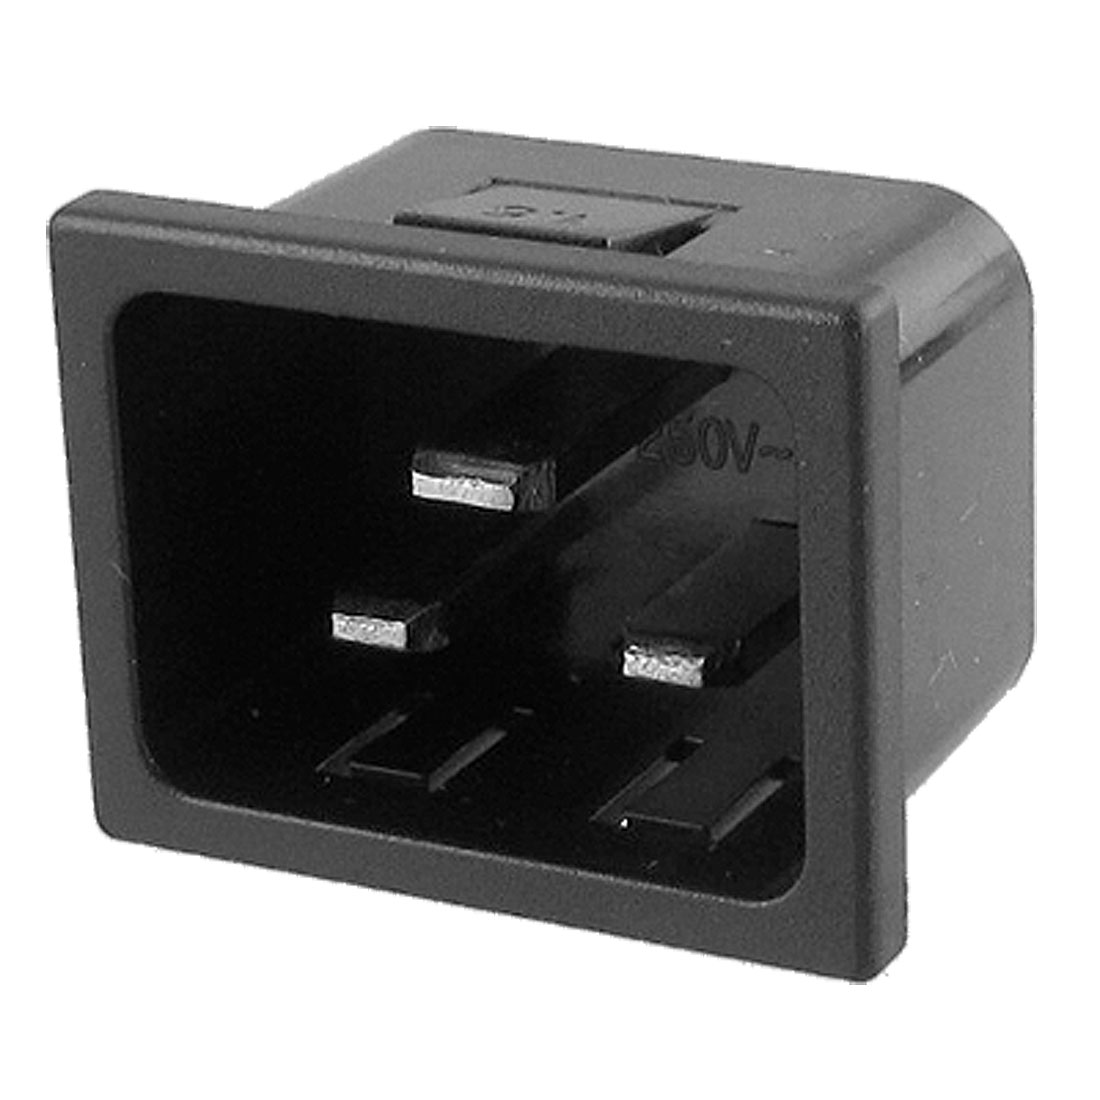 AC 250V 16A IEC 320 C20 Panel Mount Plug Adapter Power Connector Socket